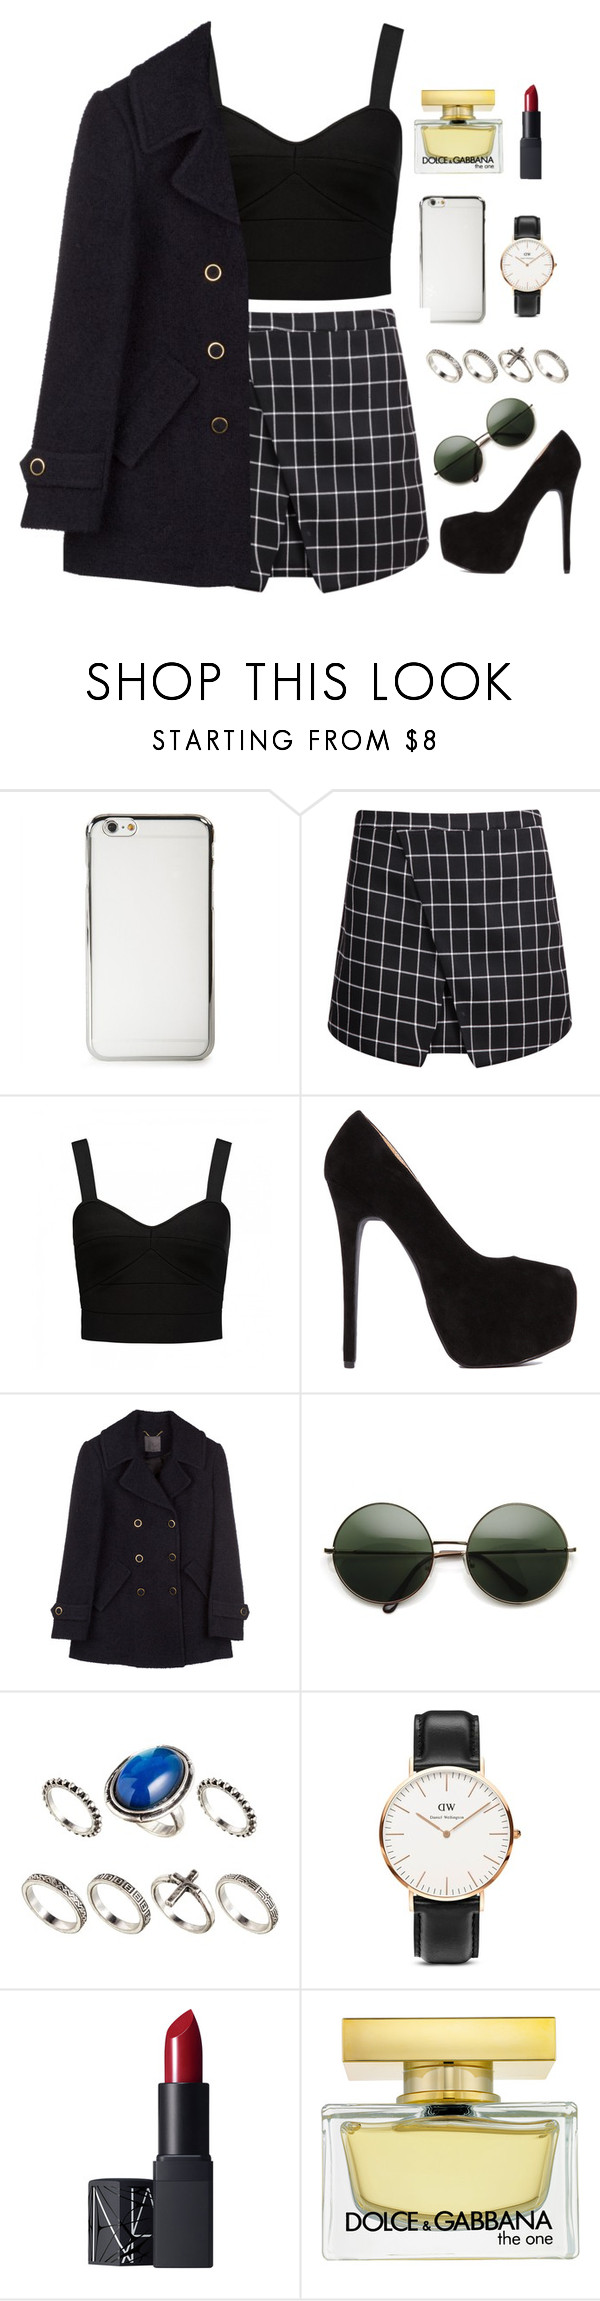 """""""Buddha for mary"""" by sarcasmisallihave ❤ liked on Polyvore featuring Forever New, ASOS, Daniel Wellington, NARS Cosmetics, Dolce&Gabbana, amazon, apple and dolcegabbana"""